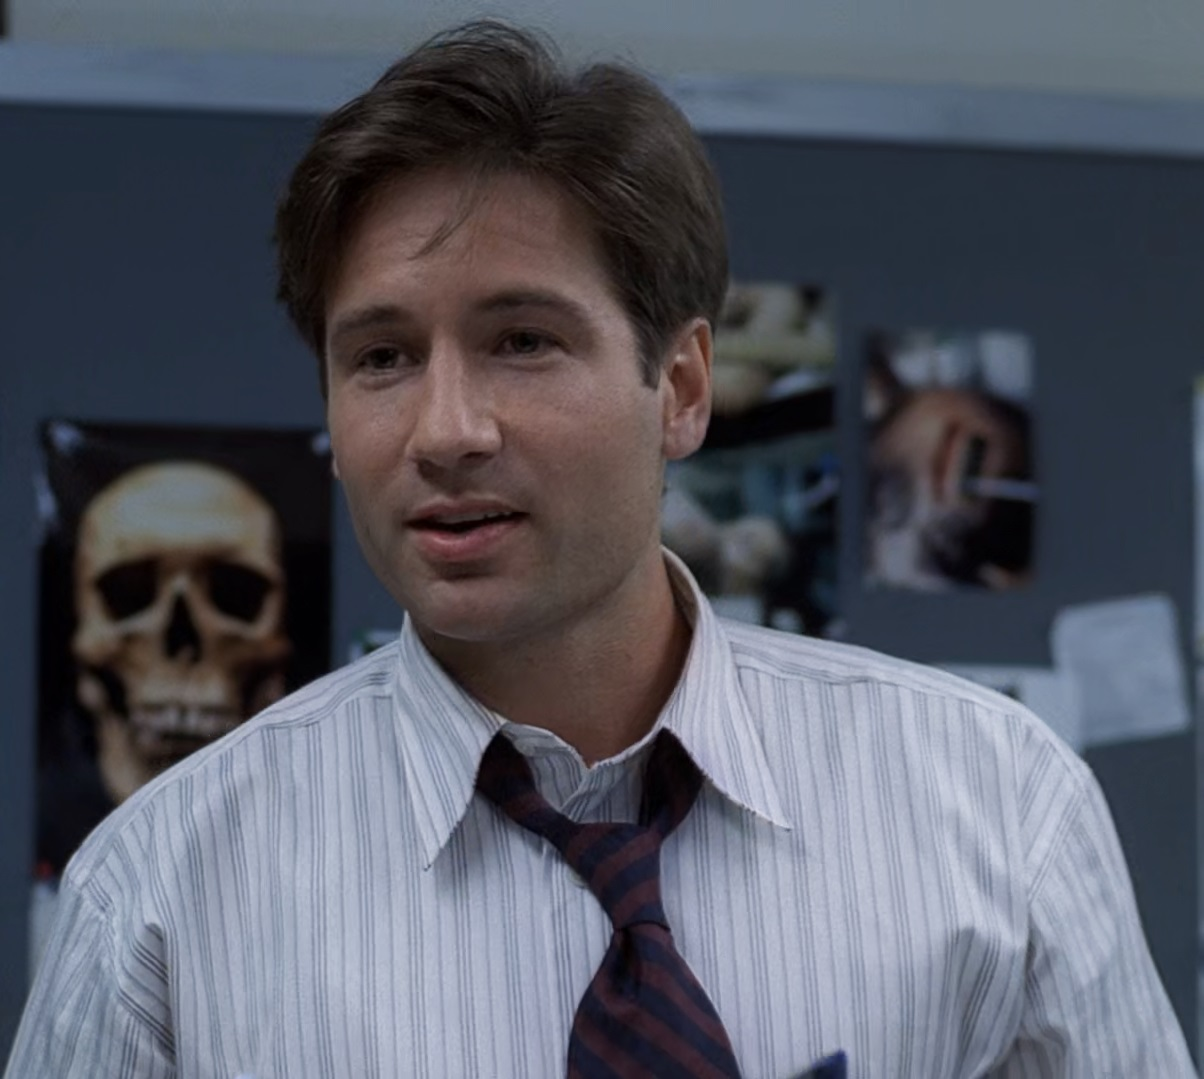 X Files Mulder. Added by Mulder